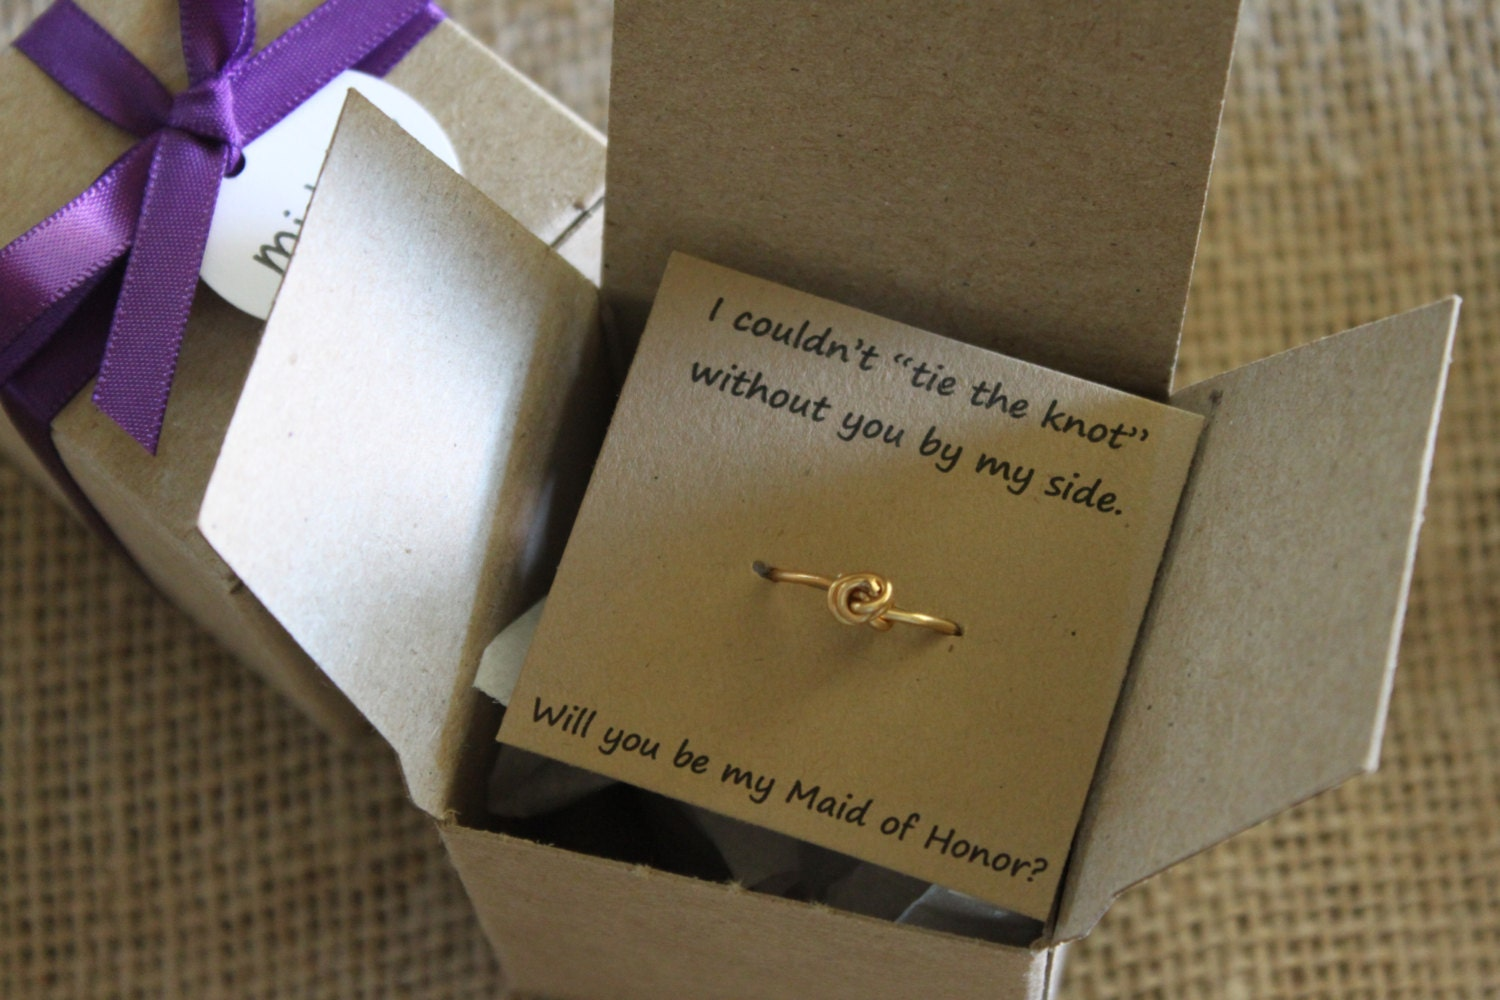 Maid Of Honor Gifts From Bride: Will You Be My Bridesmaid Gift Tie The Knot Ring Maid Of